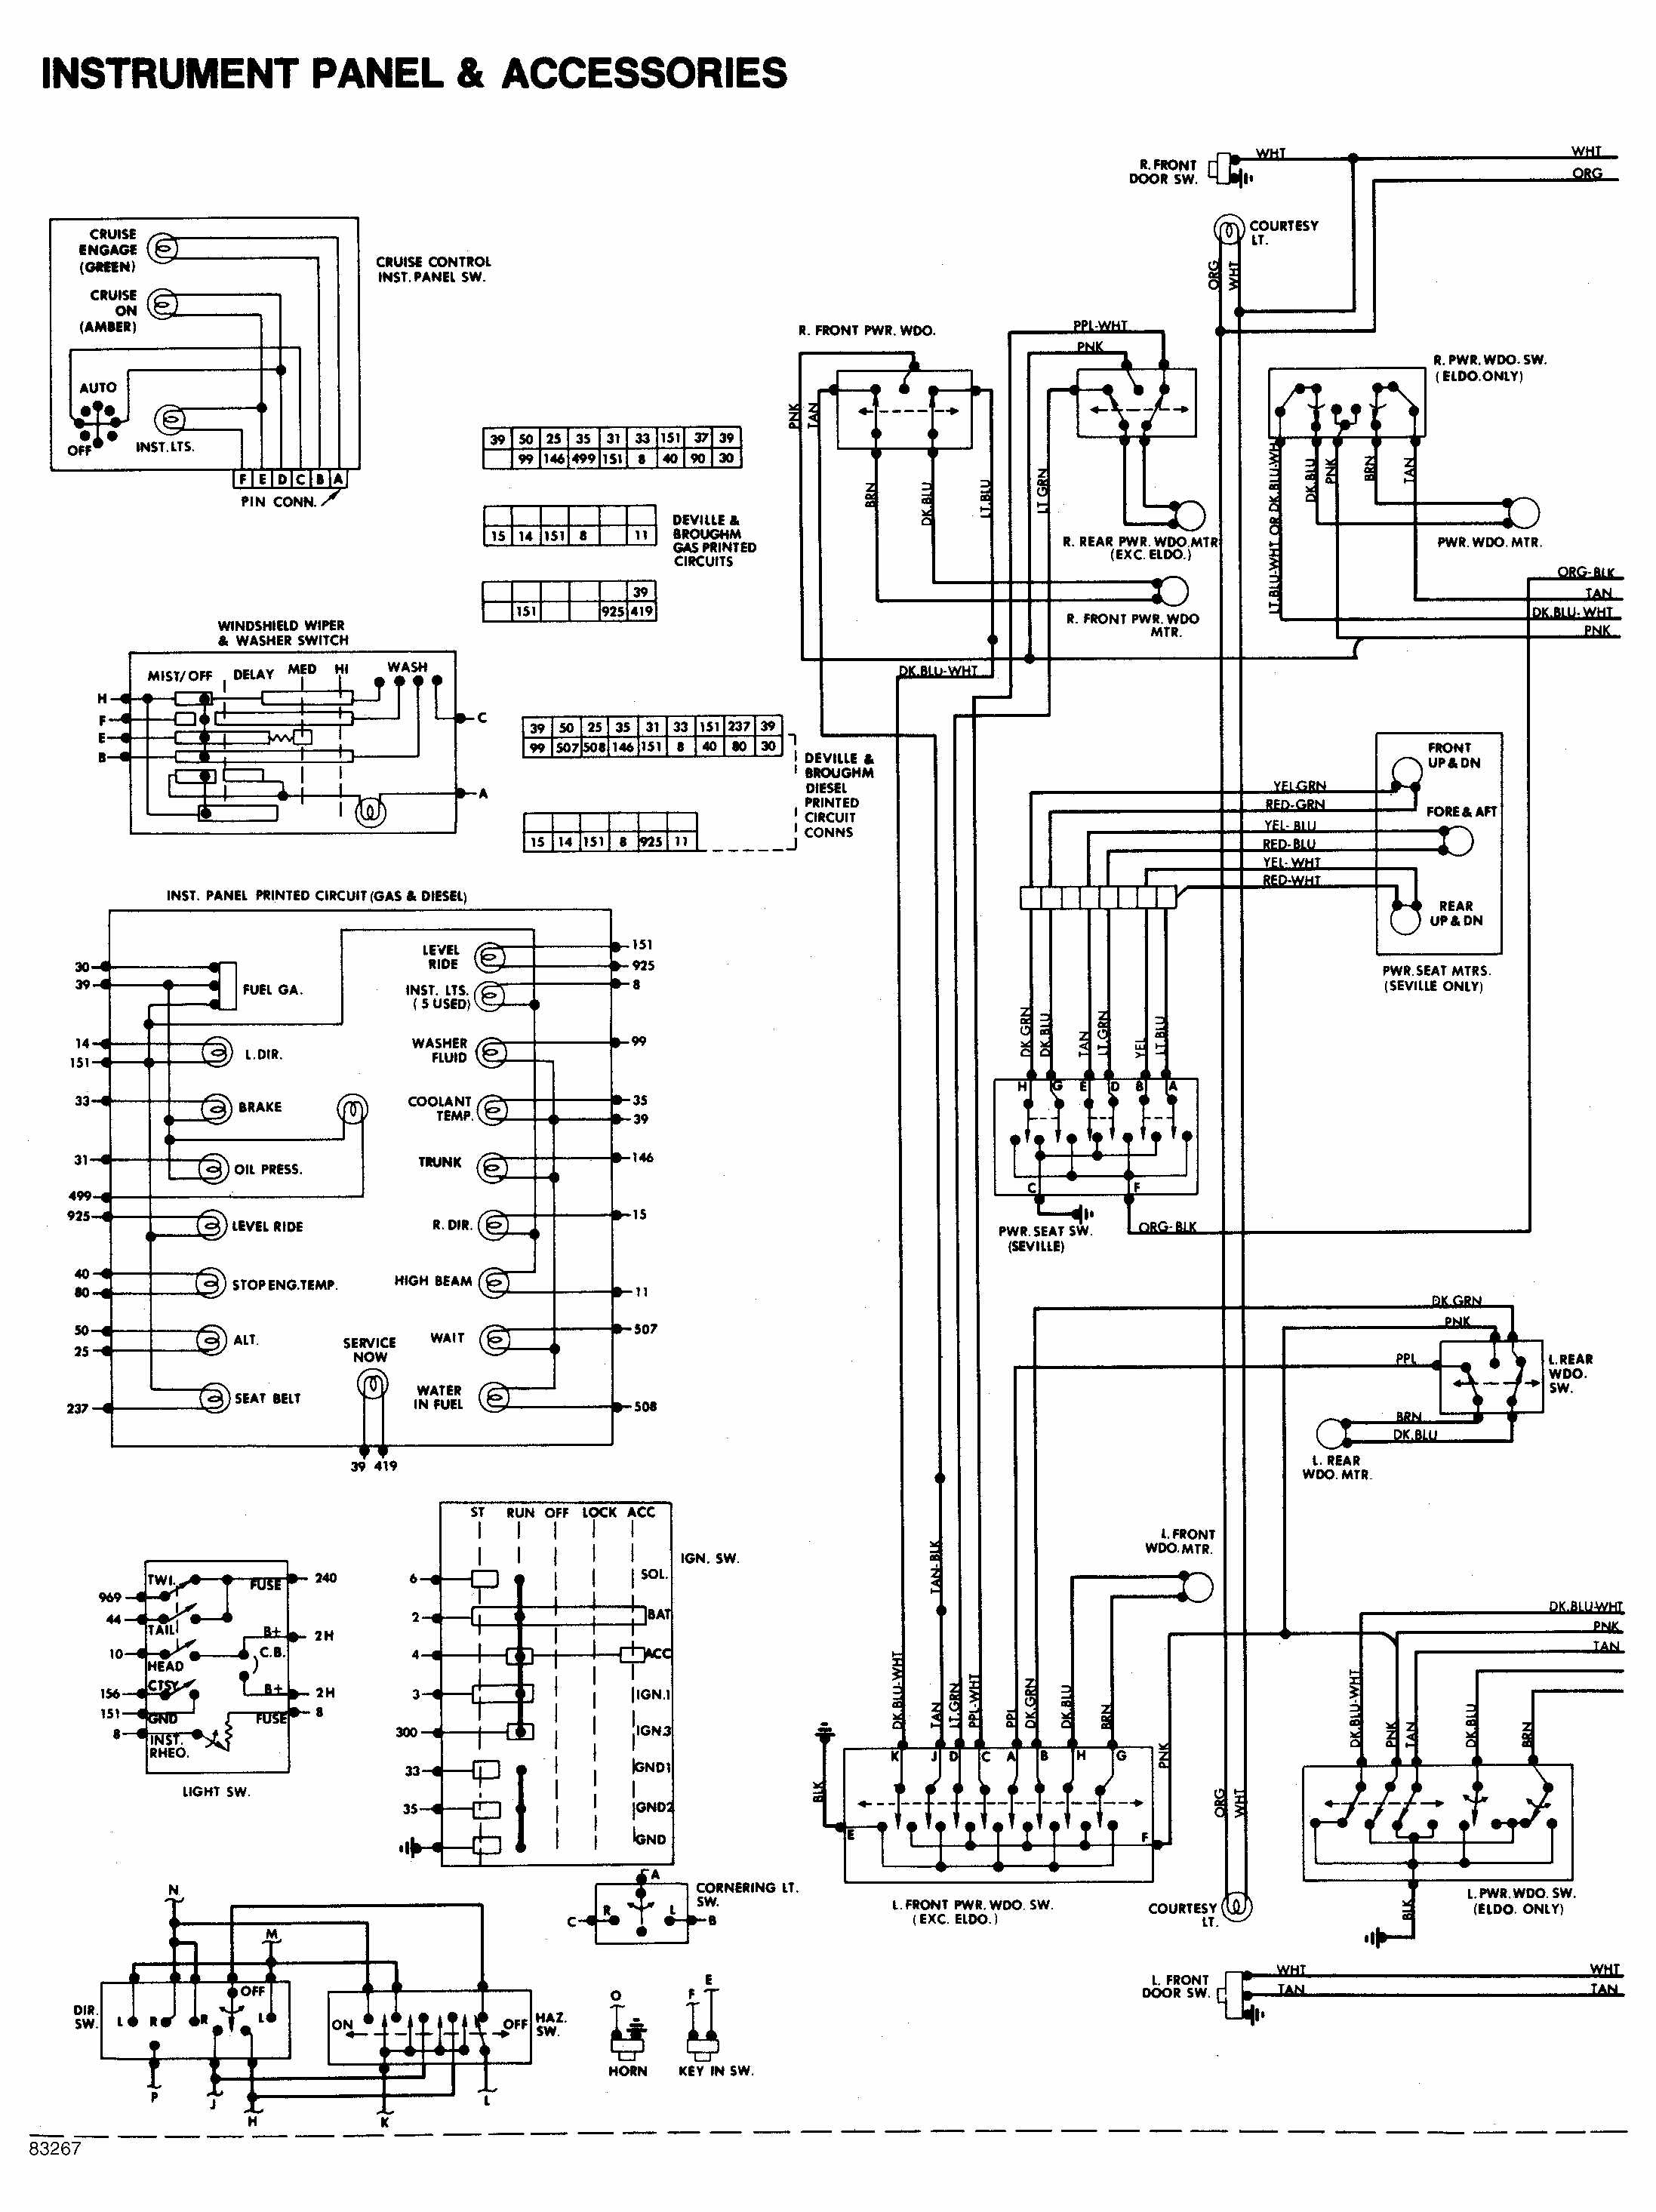 2006 Ford Mustang Power Window Wiring Harness Worksheet And 1965 Fuse Box Diagram Chevy Diagrams Rh Wizard Com 65 Dash Panel 1988 1993 Gt